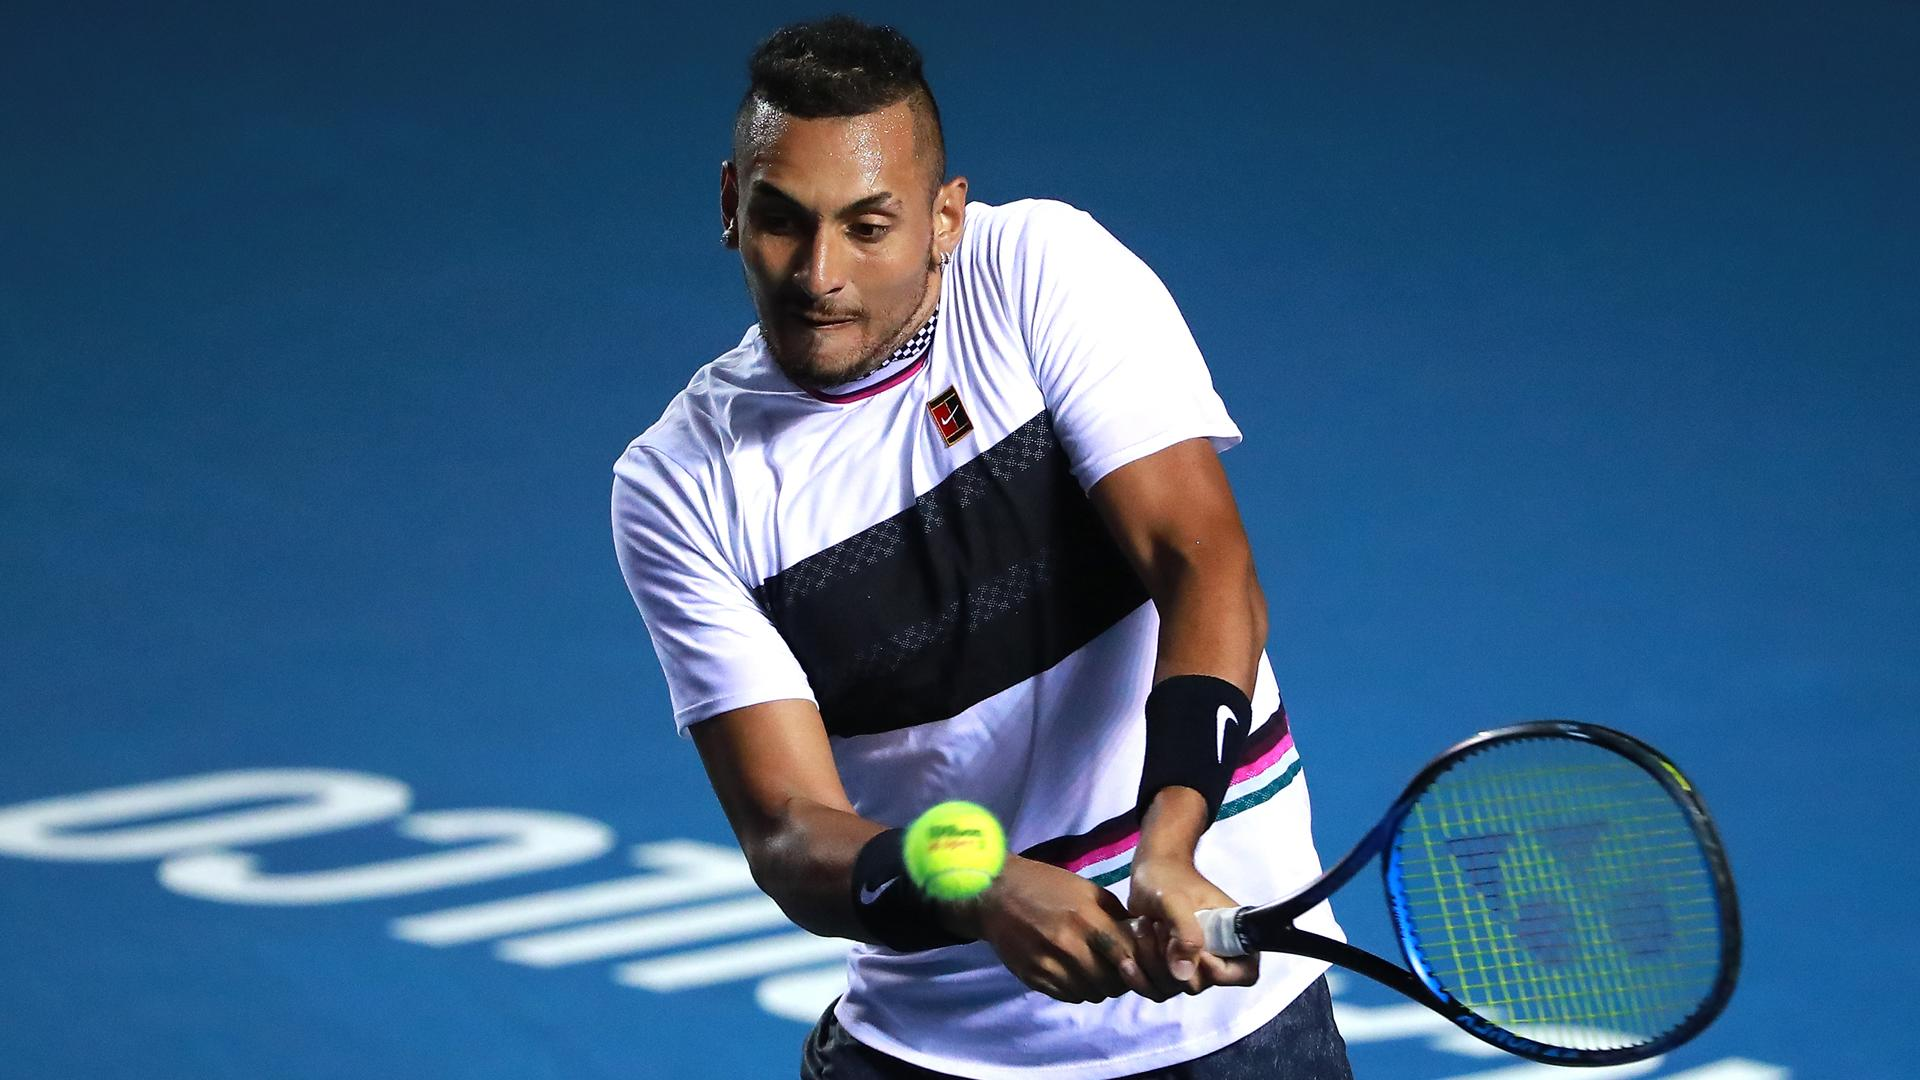 Kyrgios Saves Three Match Points To Stun Nadal In Acapulco Thriller